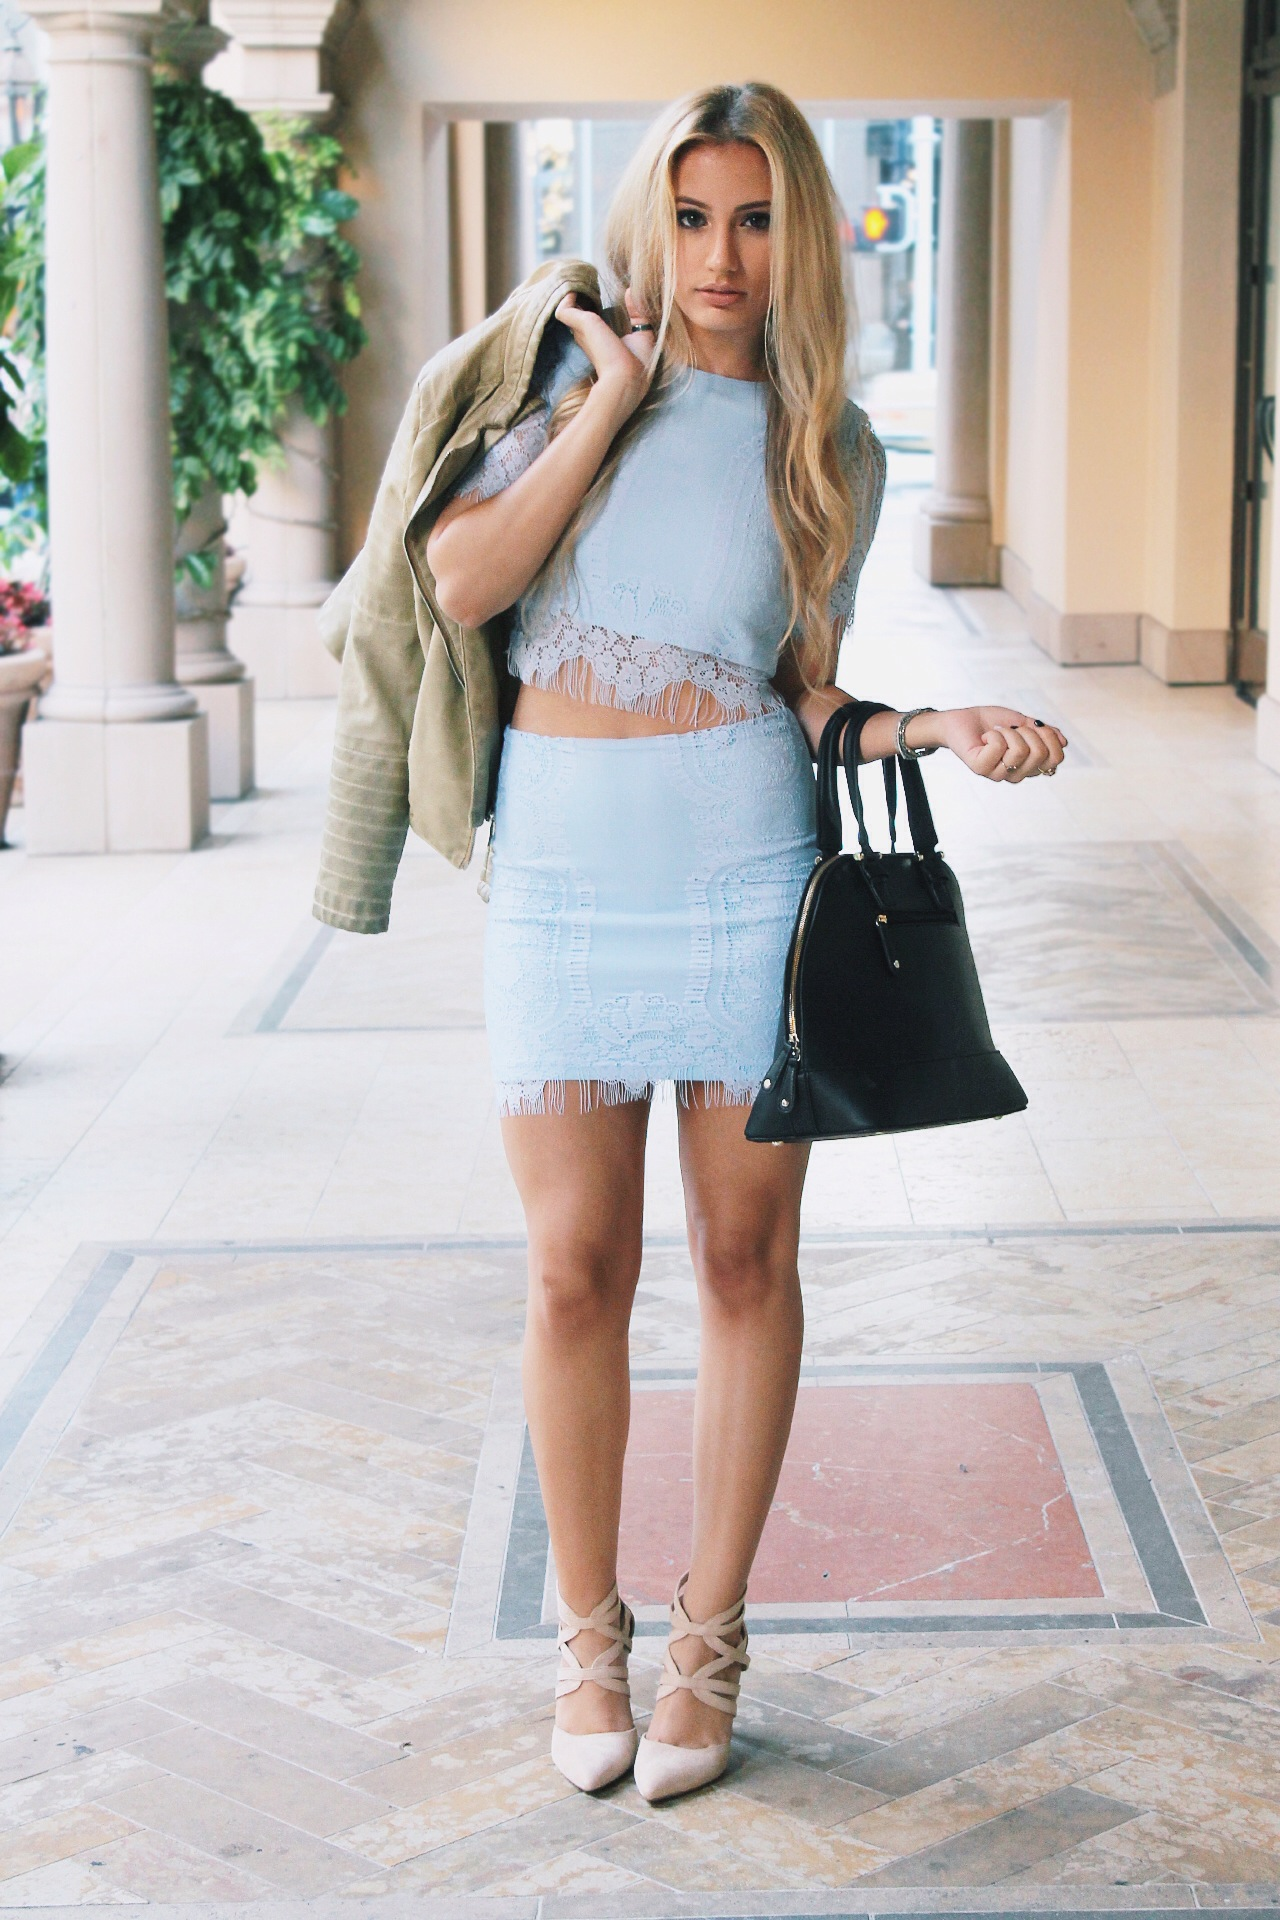 Nude Heels Outfit